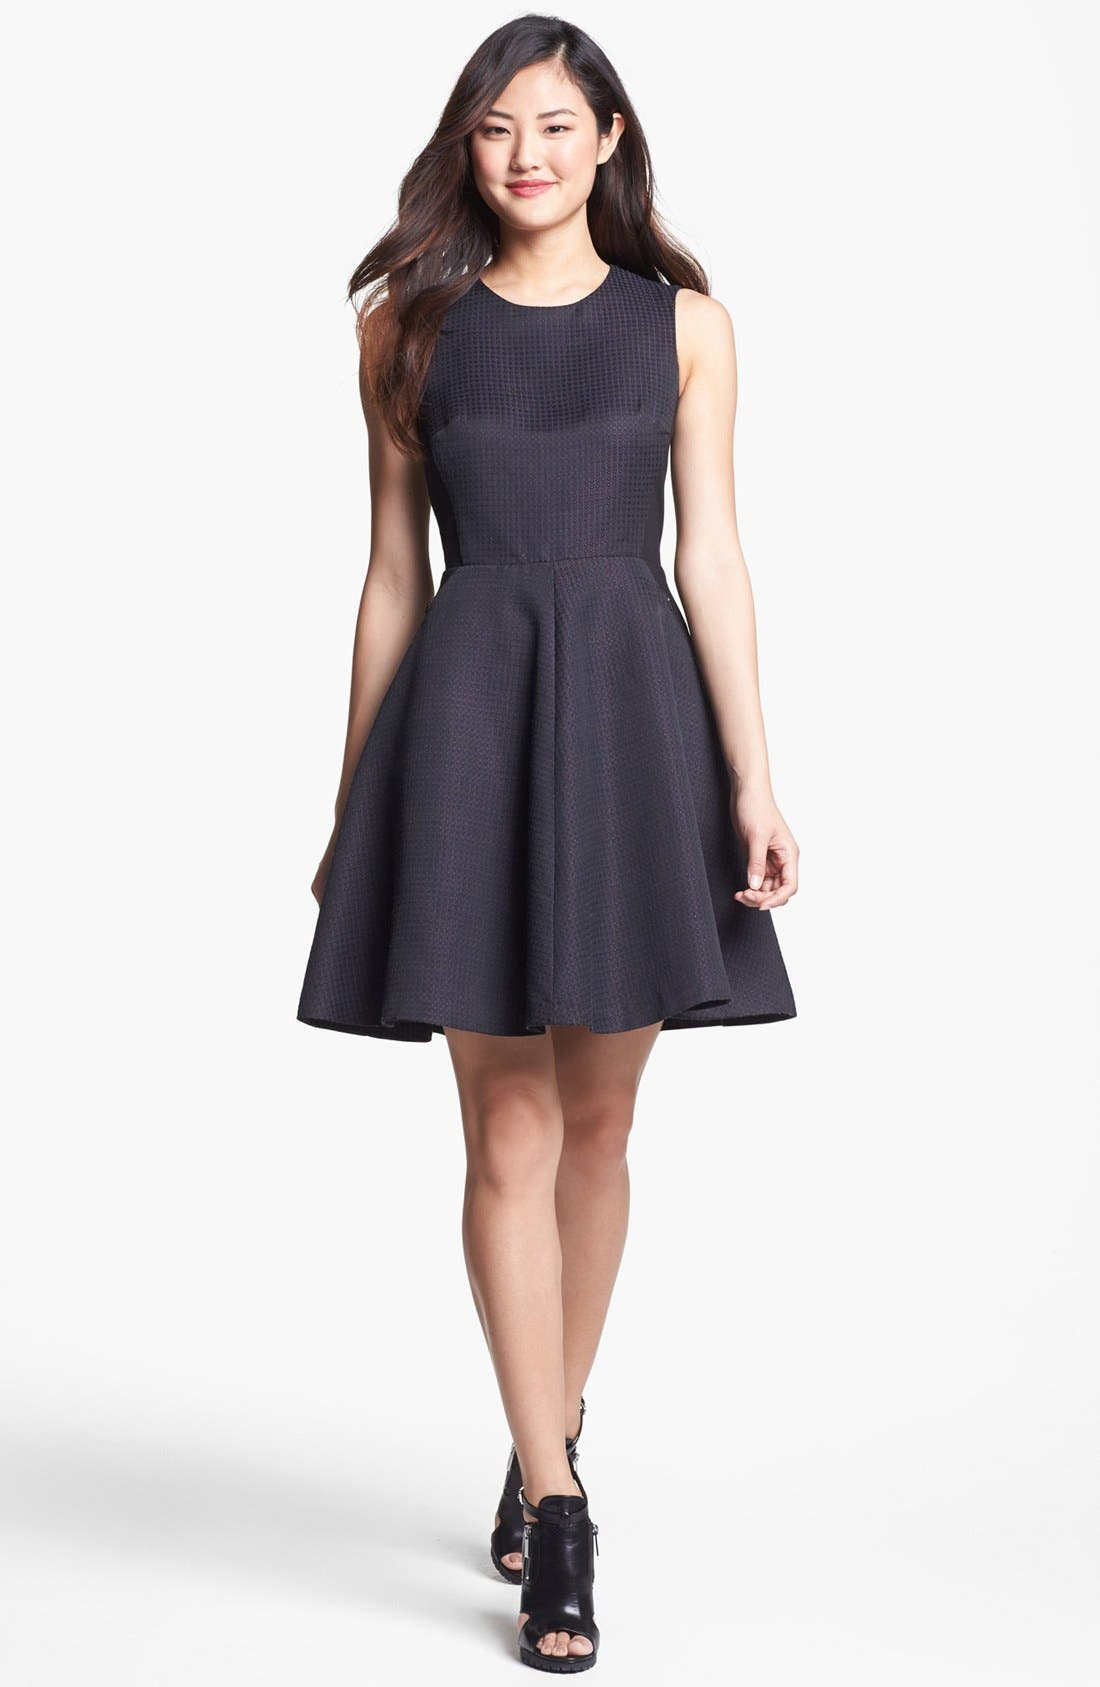 Alternate Image 1 Selected - Halogen® Jacquard Fit & Flare Dress (Regular & Petite)